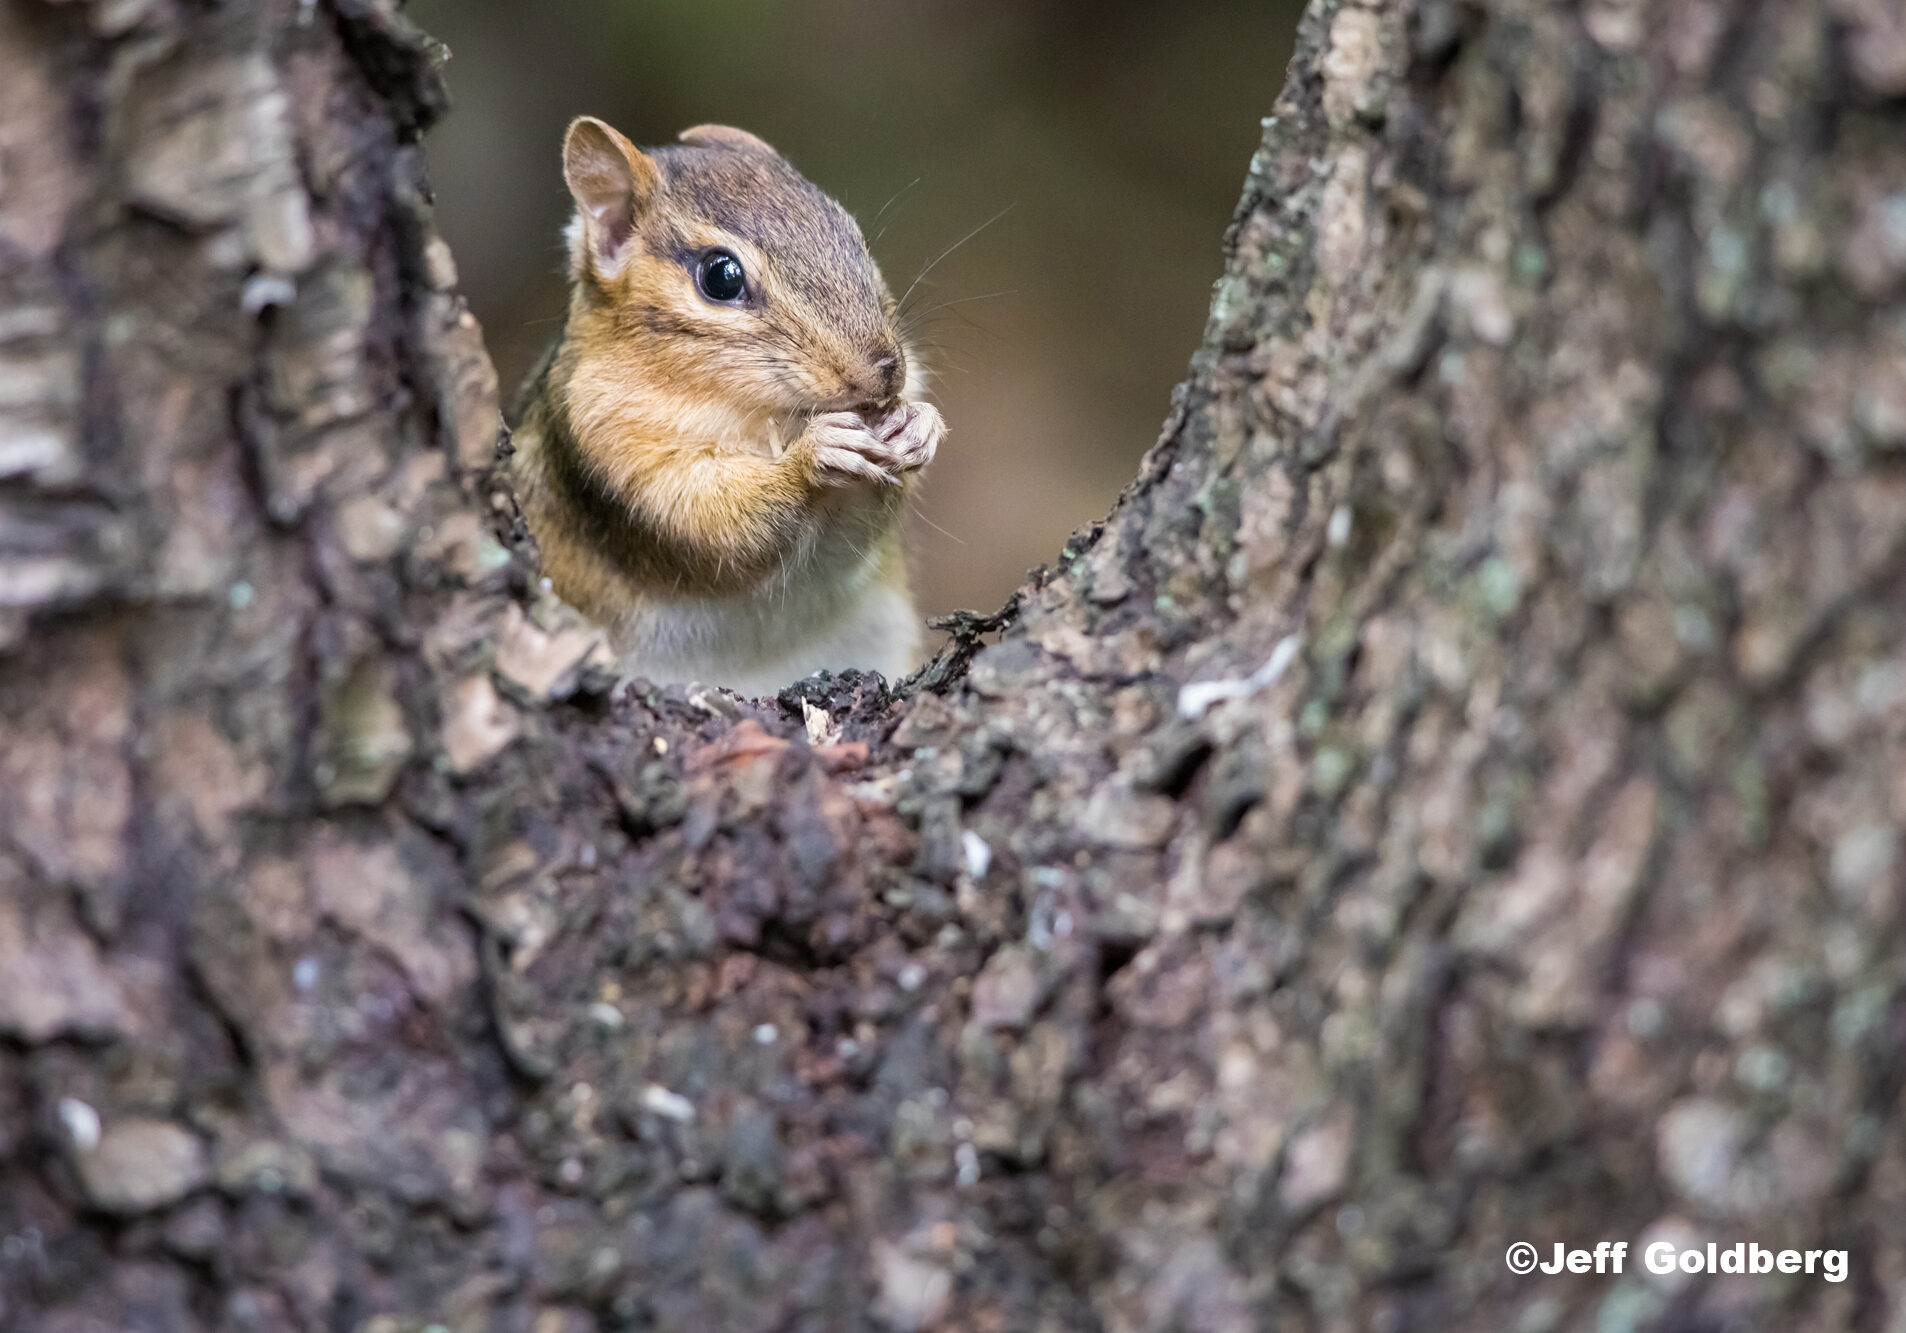 A chipmunk eats in between branches of the tree